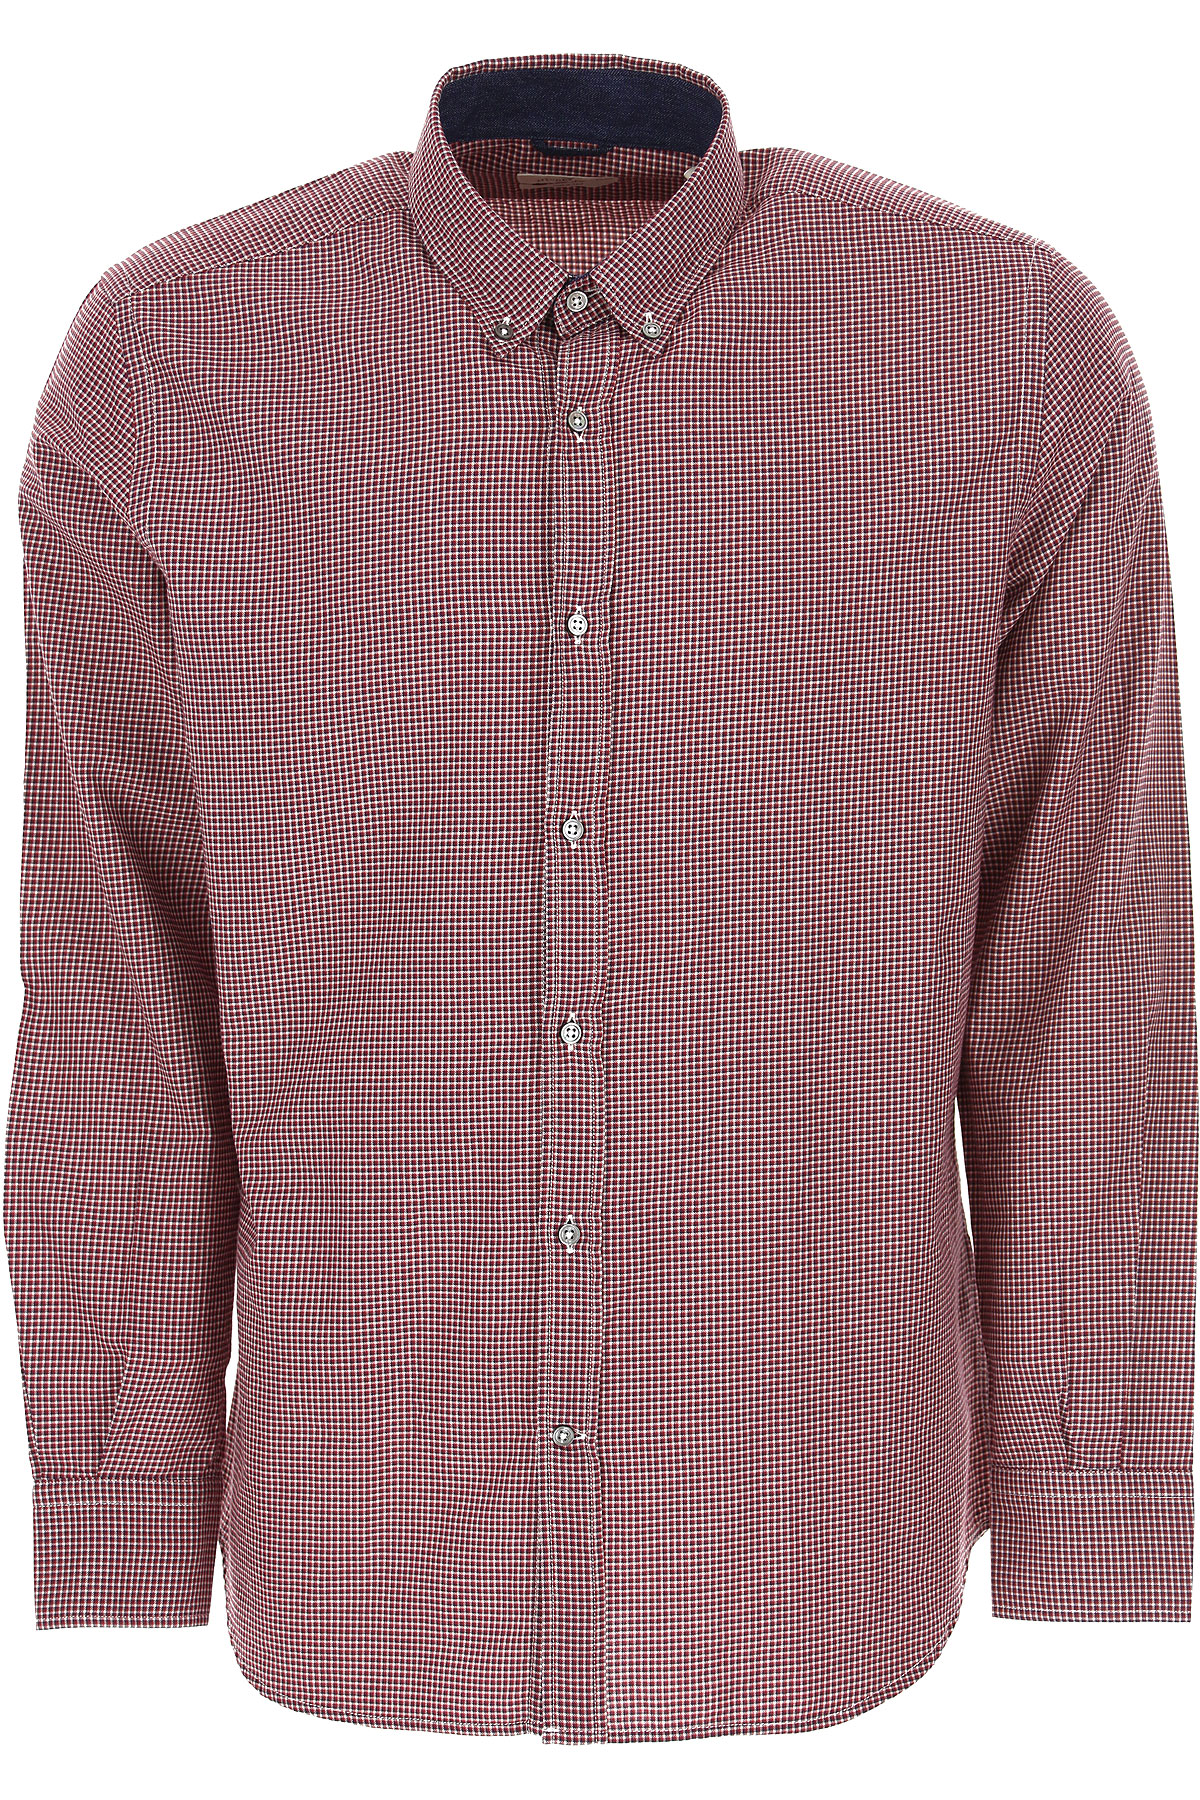 Brooksfield Shirt for Men, Red, Cotton, 2019, 15.5 15.75 16 16.5